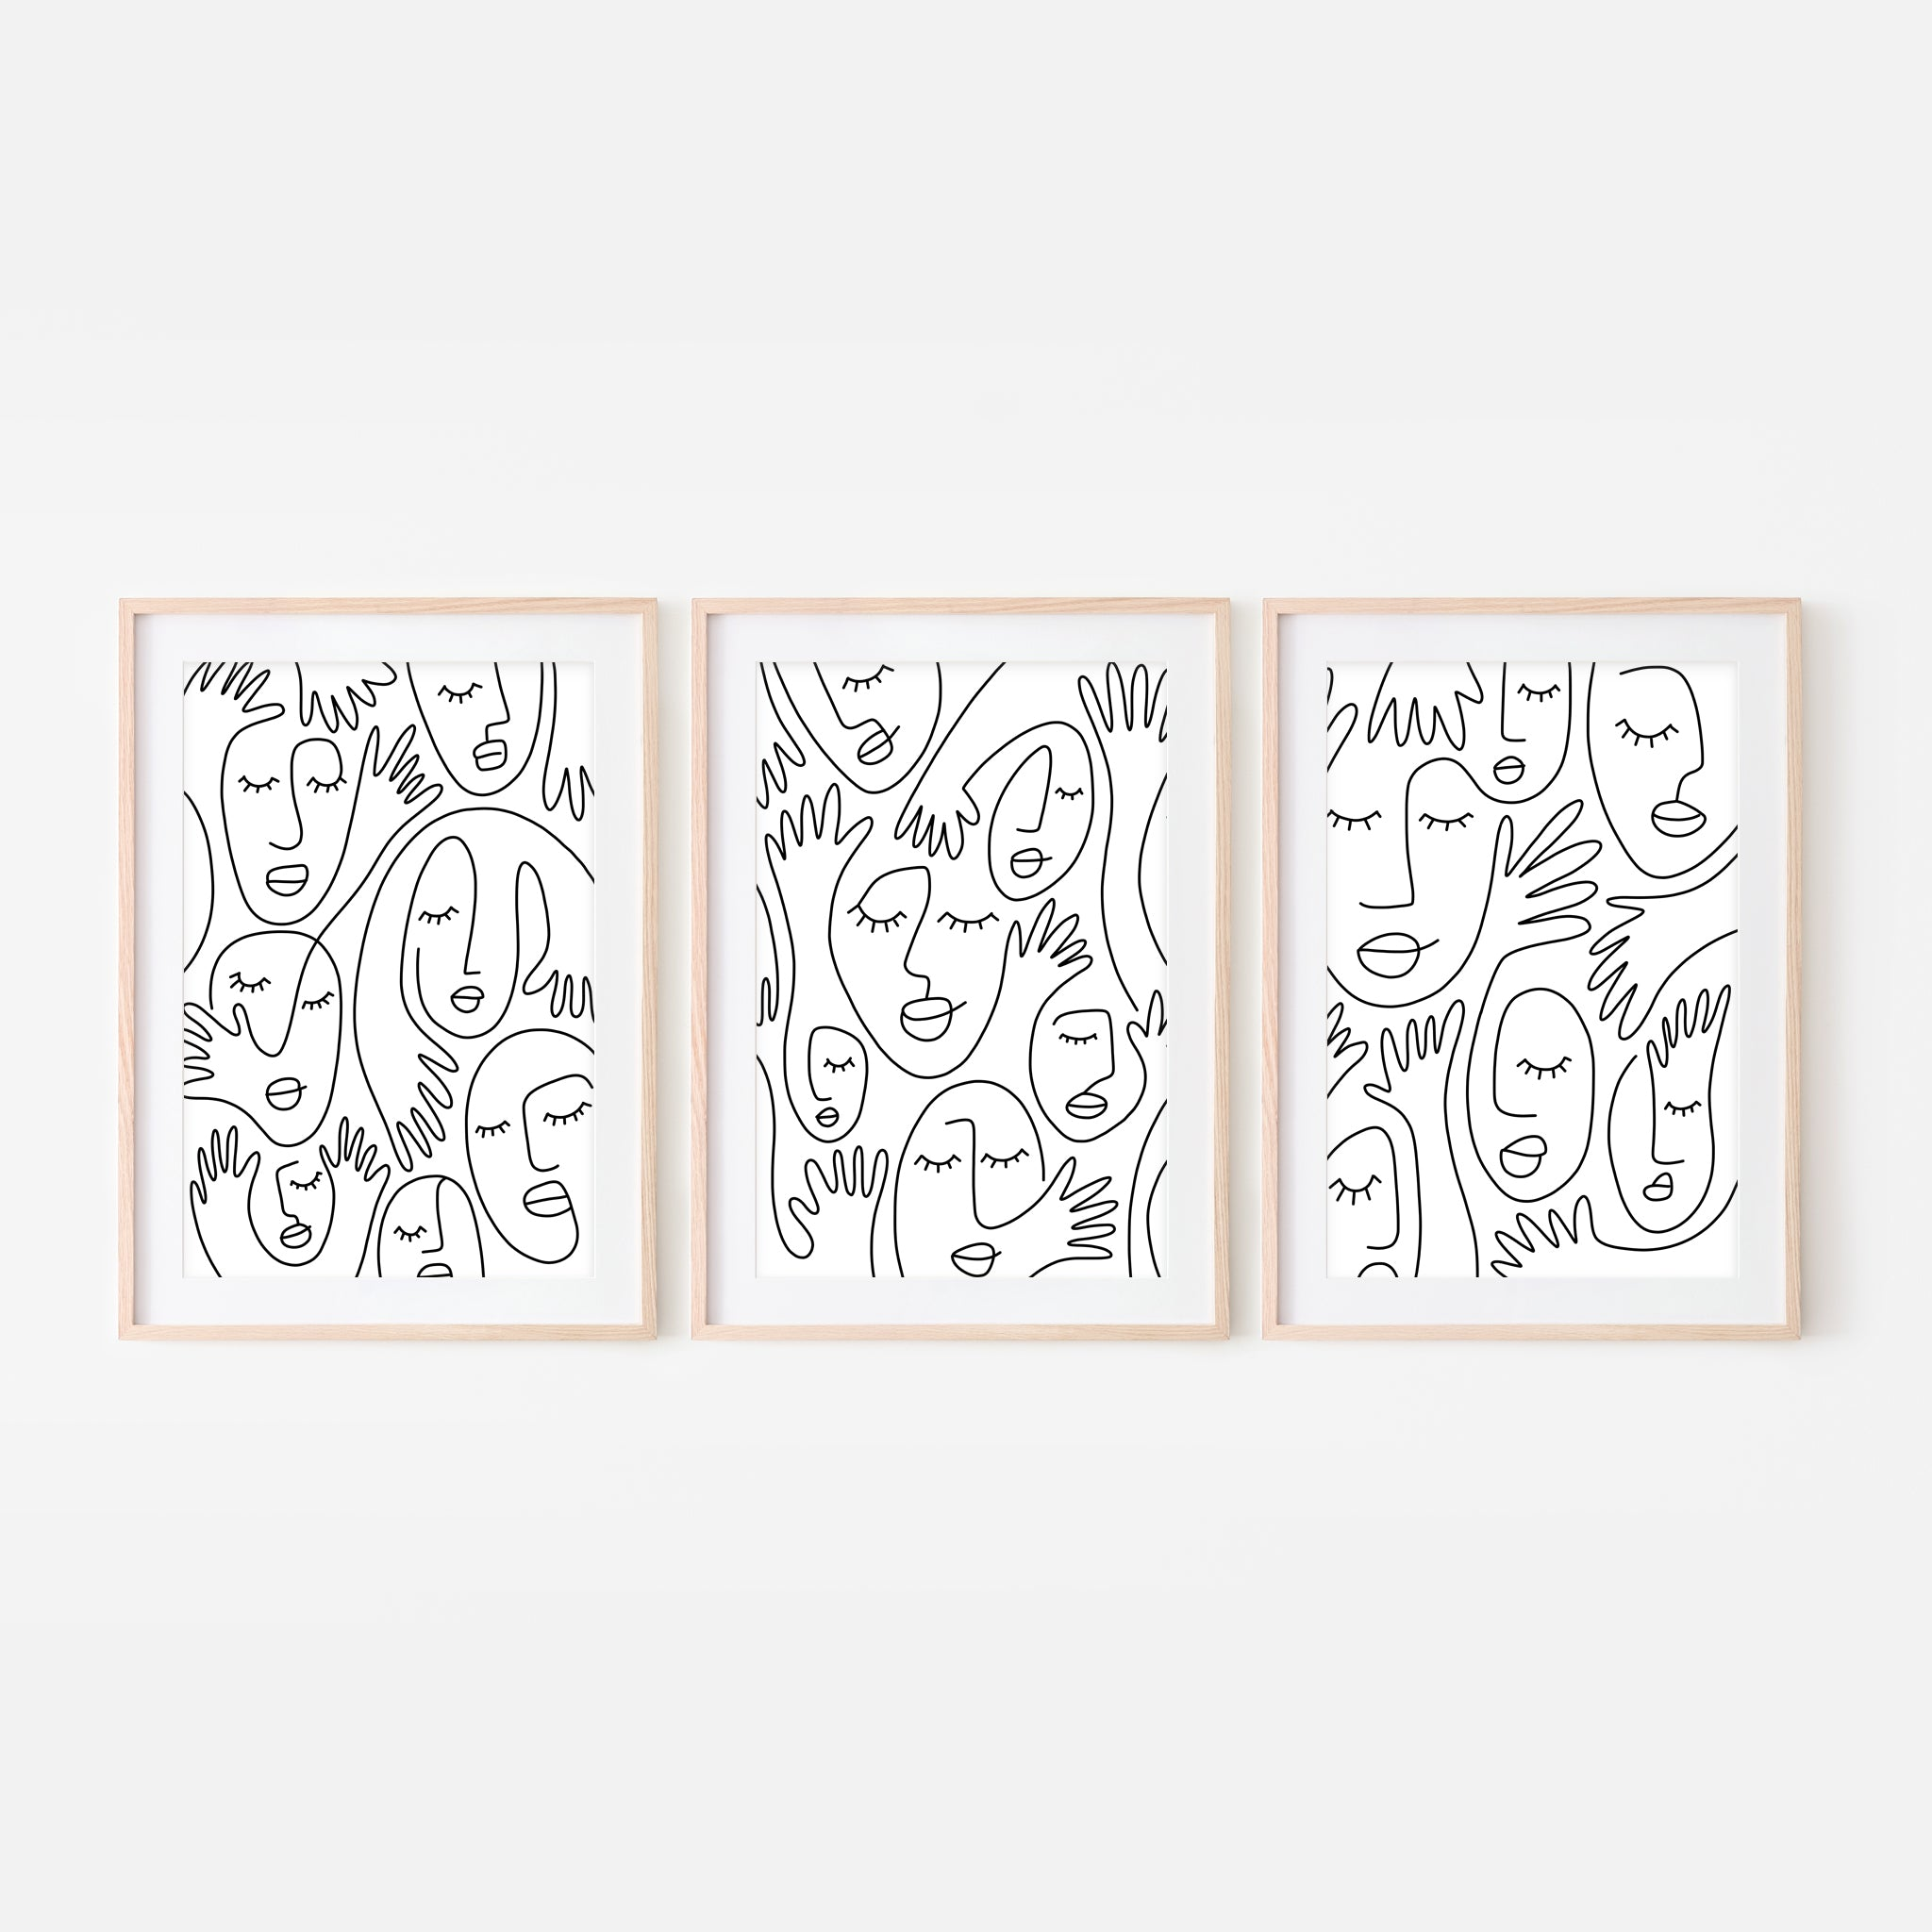 Set of 3 Abstract Faces & Hands Line Art Wall Decor - Black and White Continuous Line Drawing - Print, Poster or Printable Download